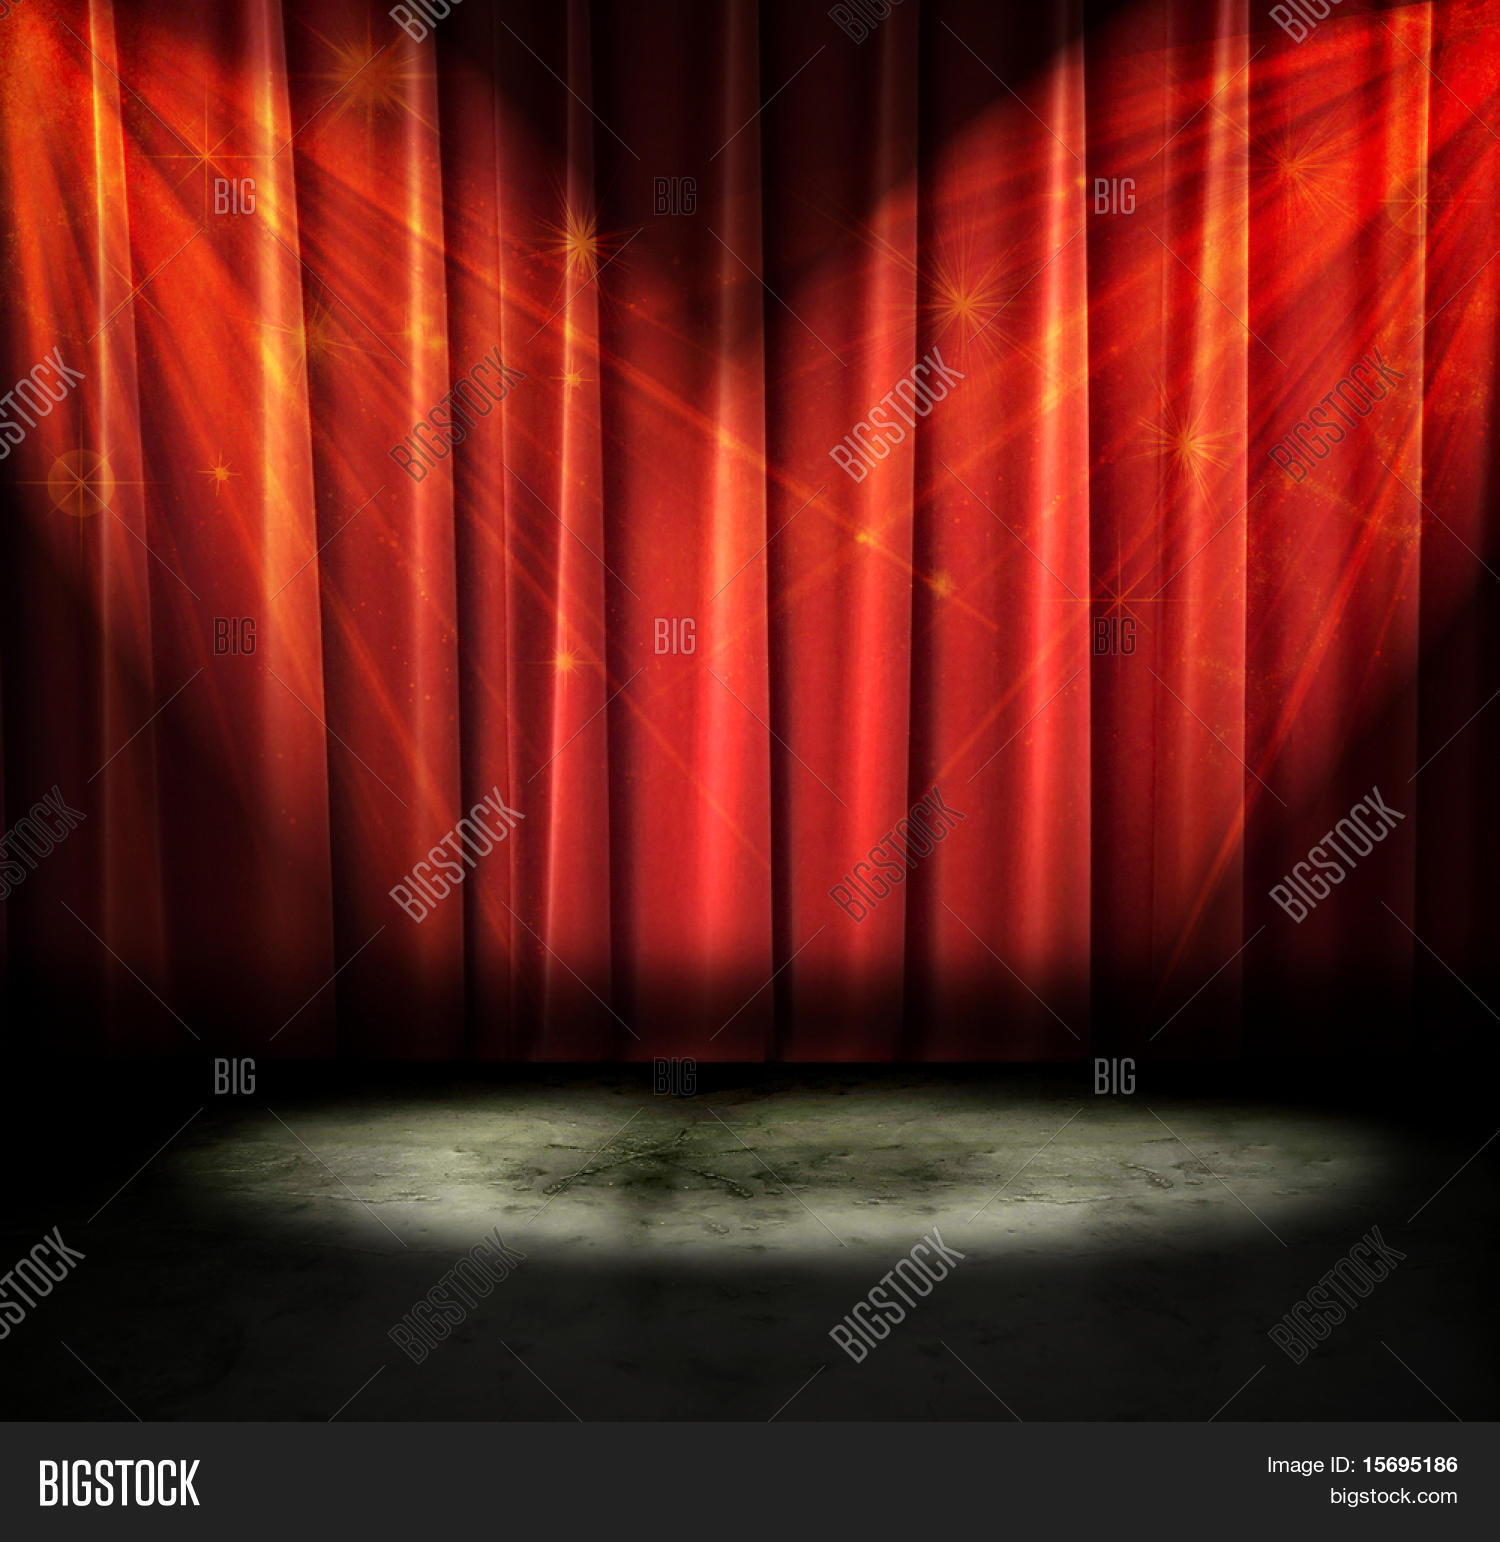 Red stage curtain with lights - Red Curtains On A Stage With Sparkly Lights